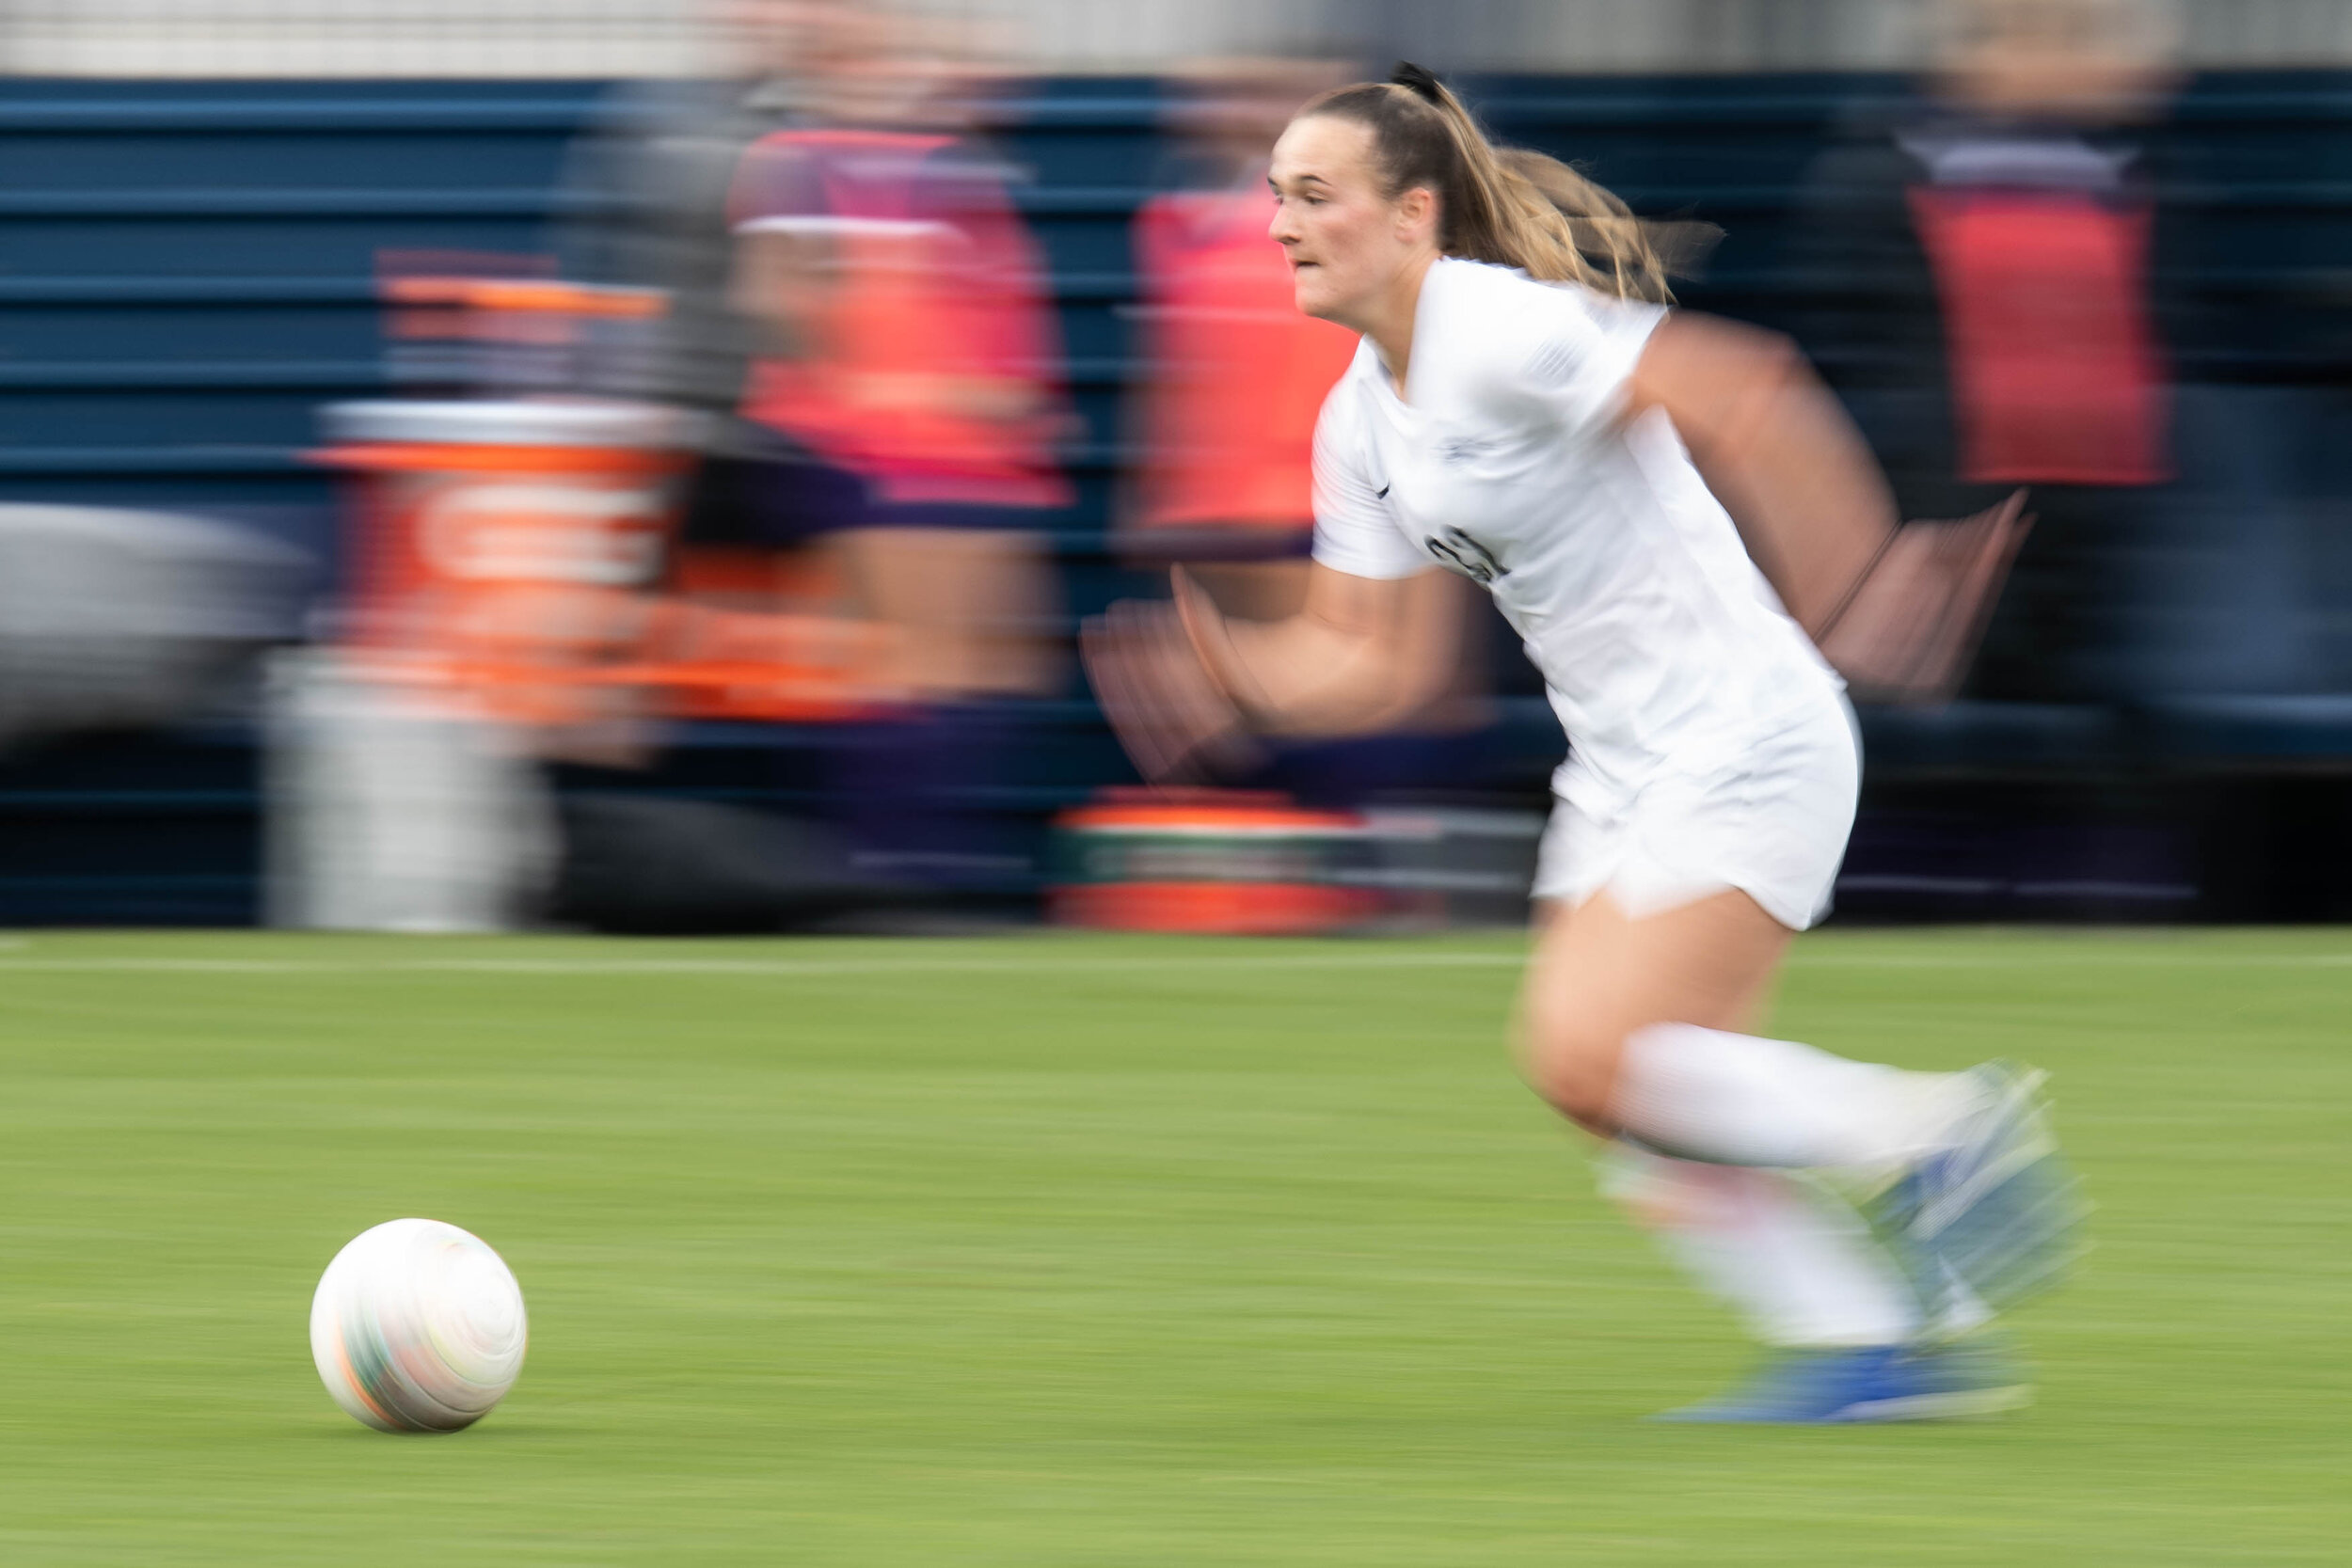 Forward, Jordan Canniff (32) dribbles the ball during the match against Northwestern on Sunday, Oct. 20, 2019 at Jeffrey Field. | Photo by: Noah Riffe